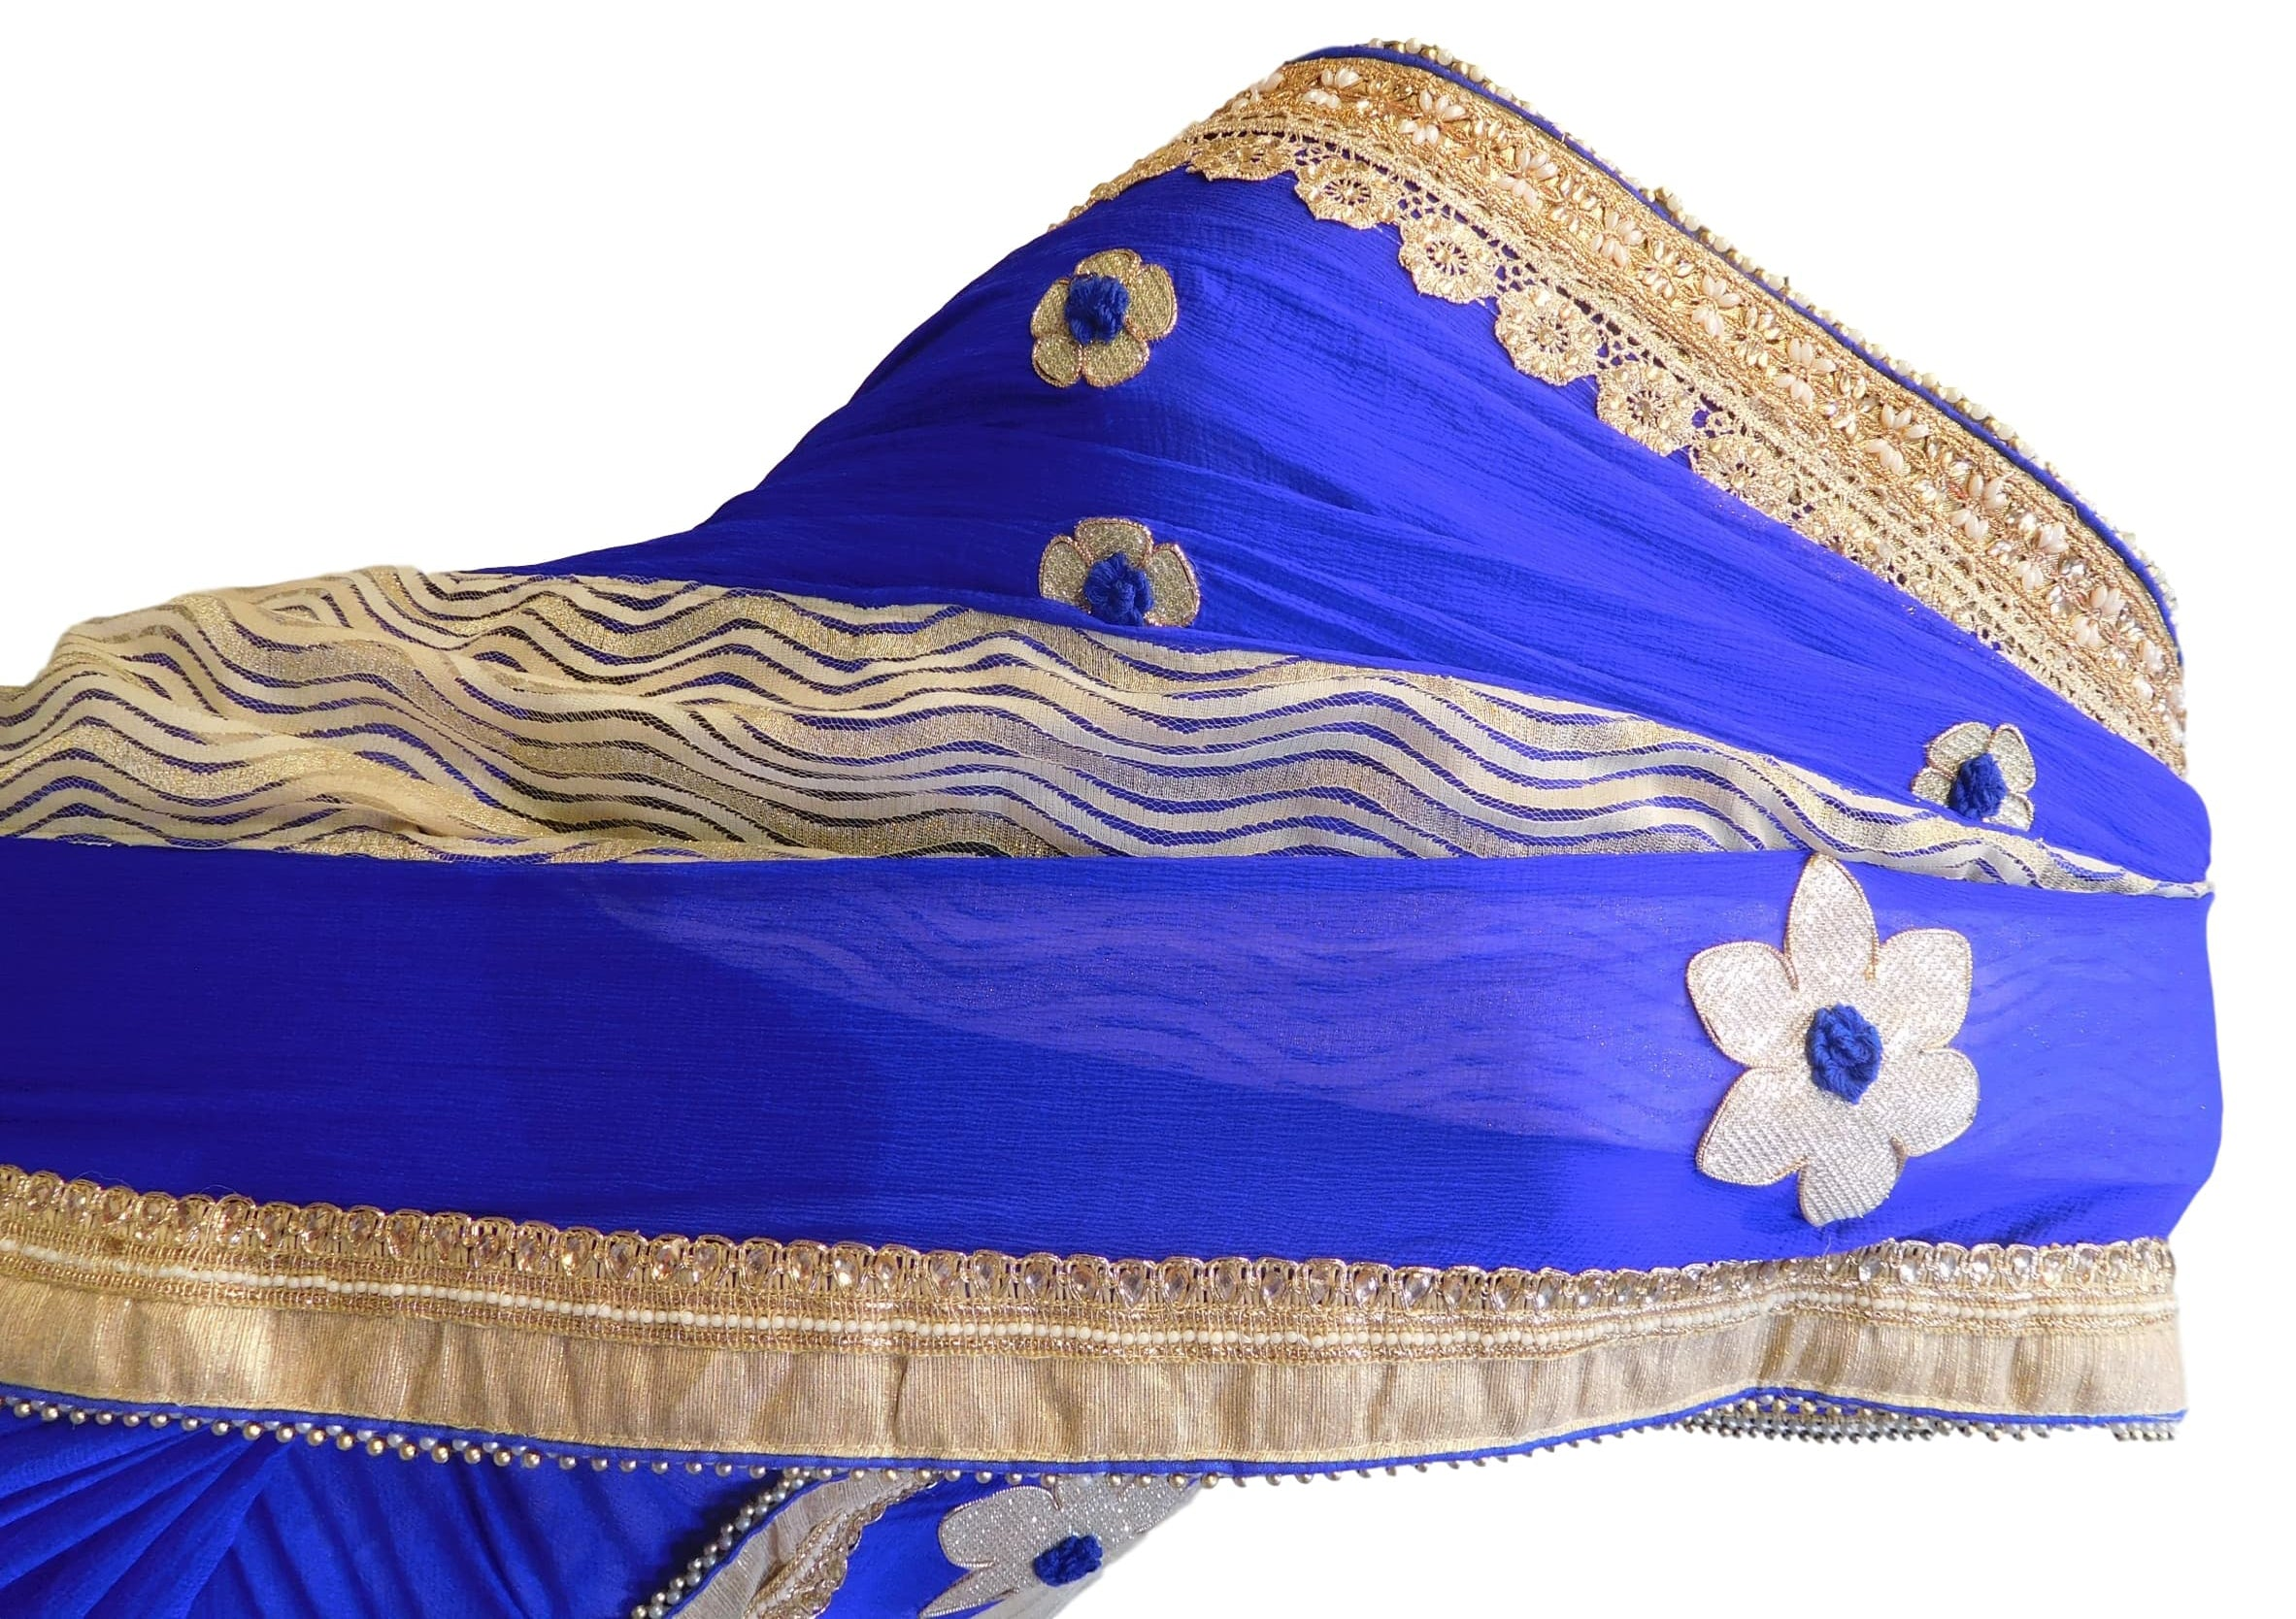 Blue & Cream Designer Georgette (Viscos) Hand Embroidery Zari Pearl Stone Work Saree Sari